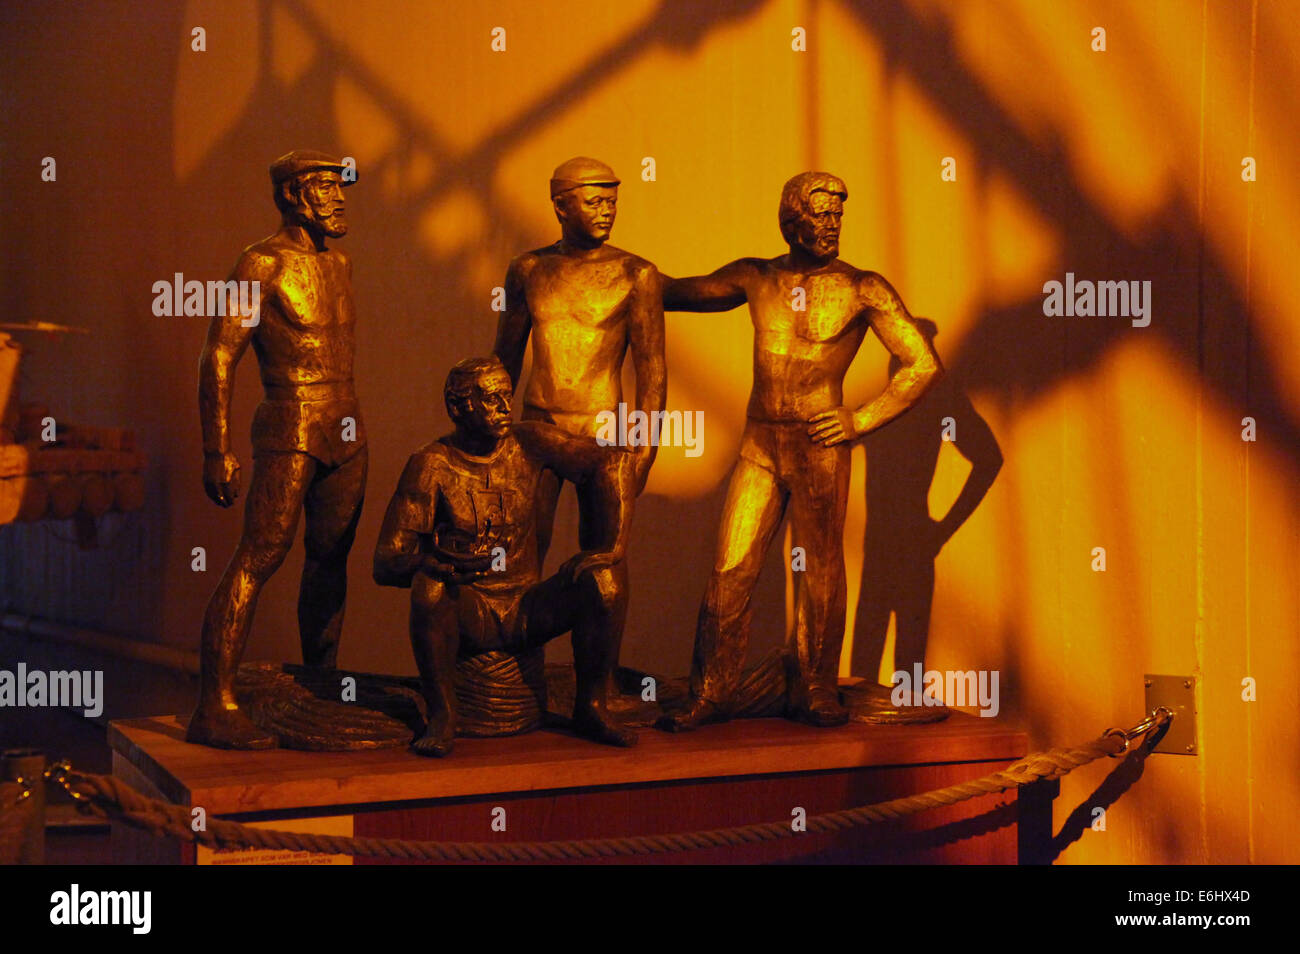 Bronze Sculpture of Thor Heyerdahl and his Crew at the Kon-Tiki Museum in Oslo - Stock Image